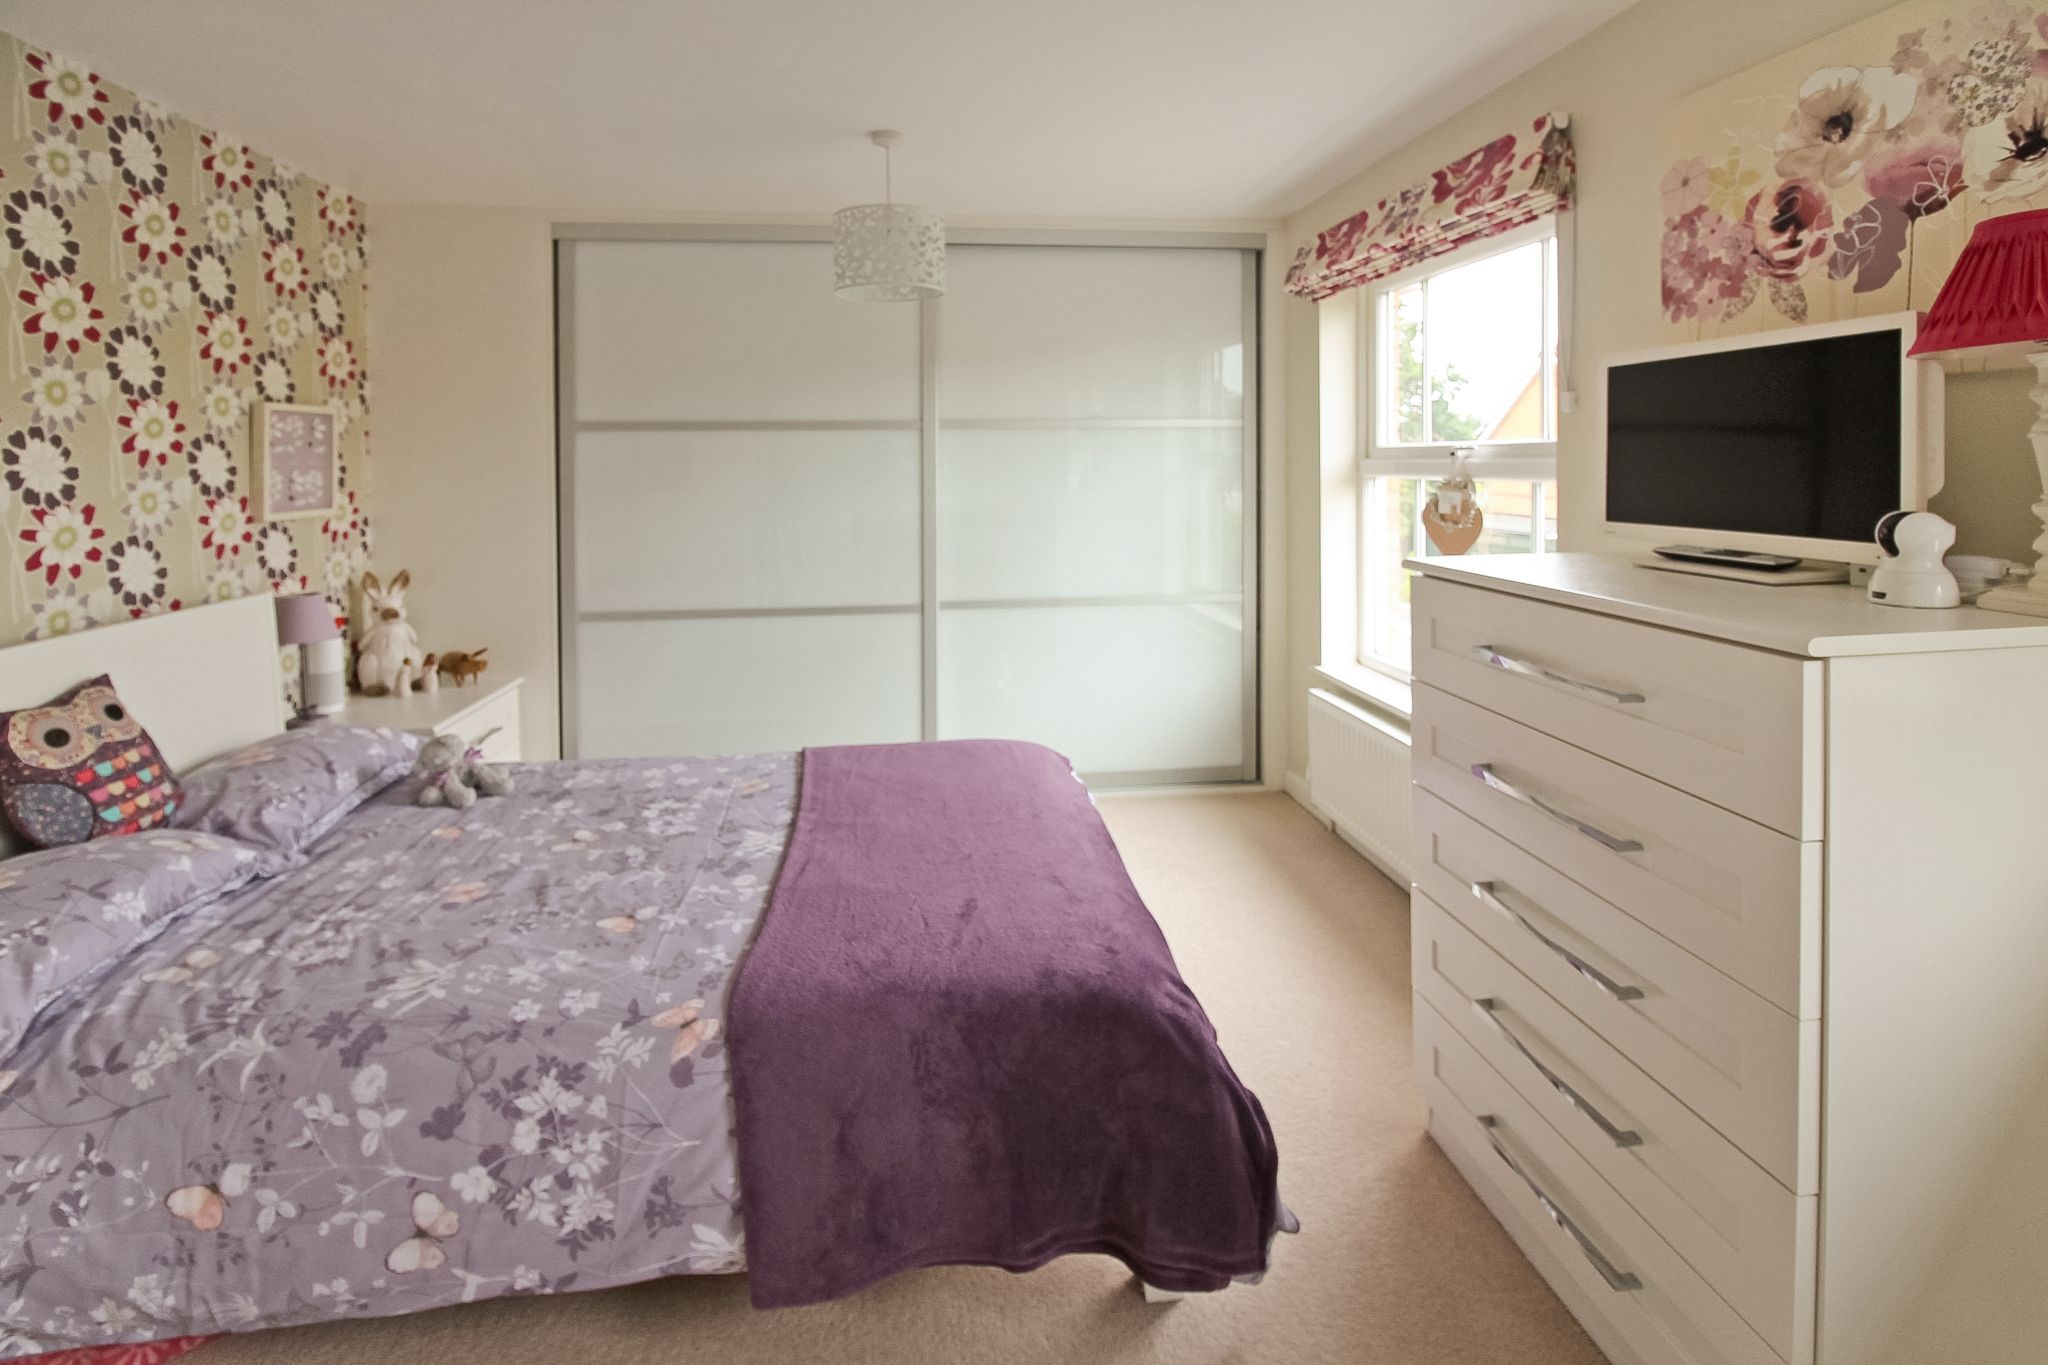 4 bedroom detached house SSTC in Solihull - Photograph 12.